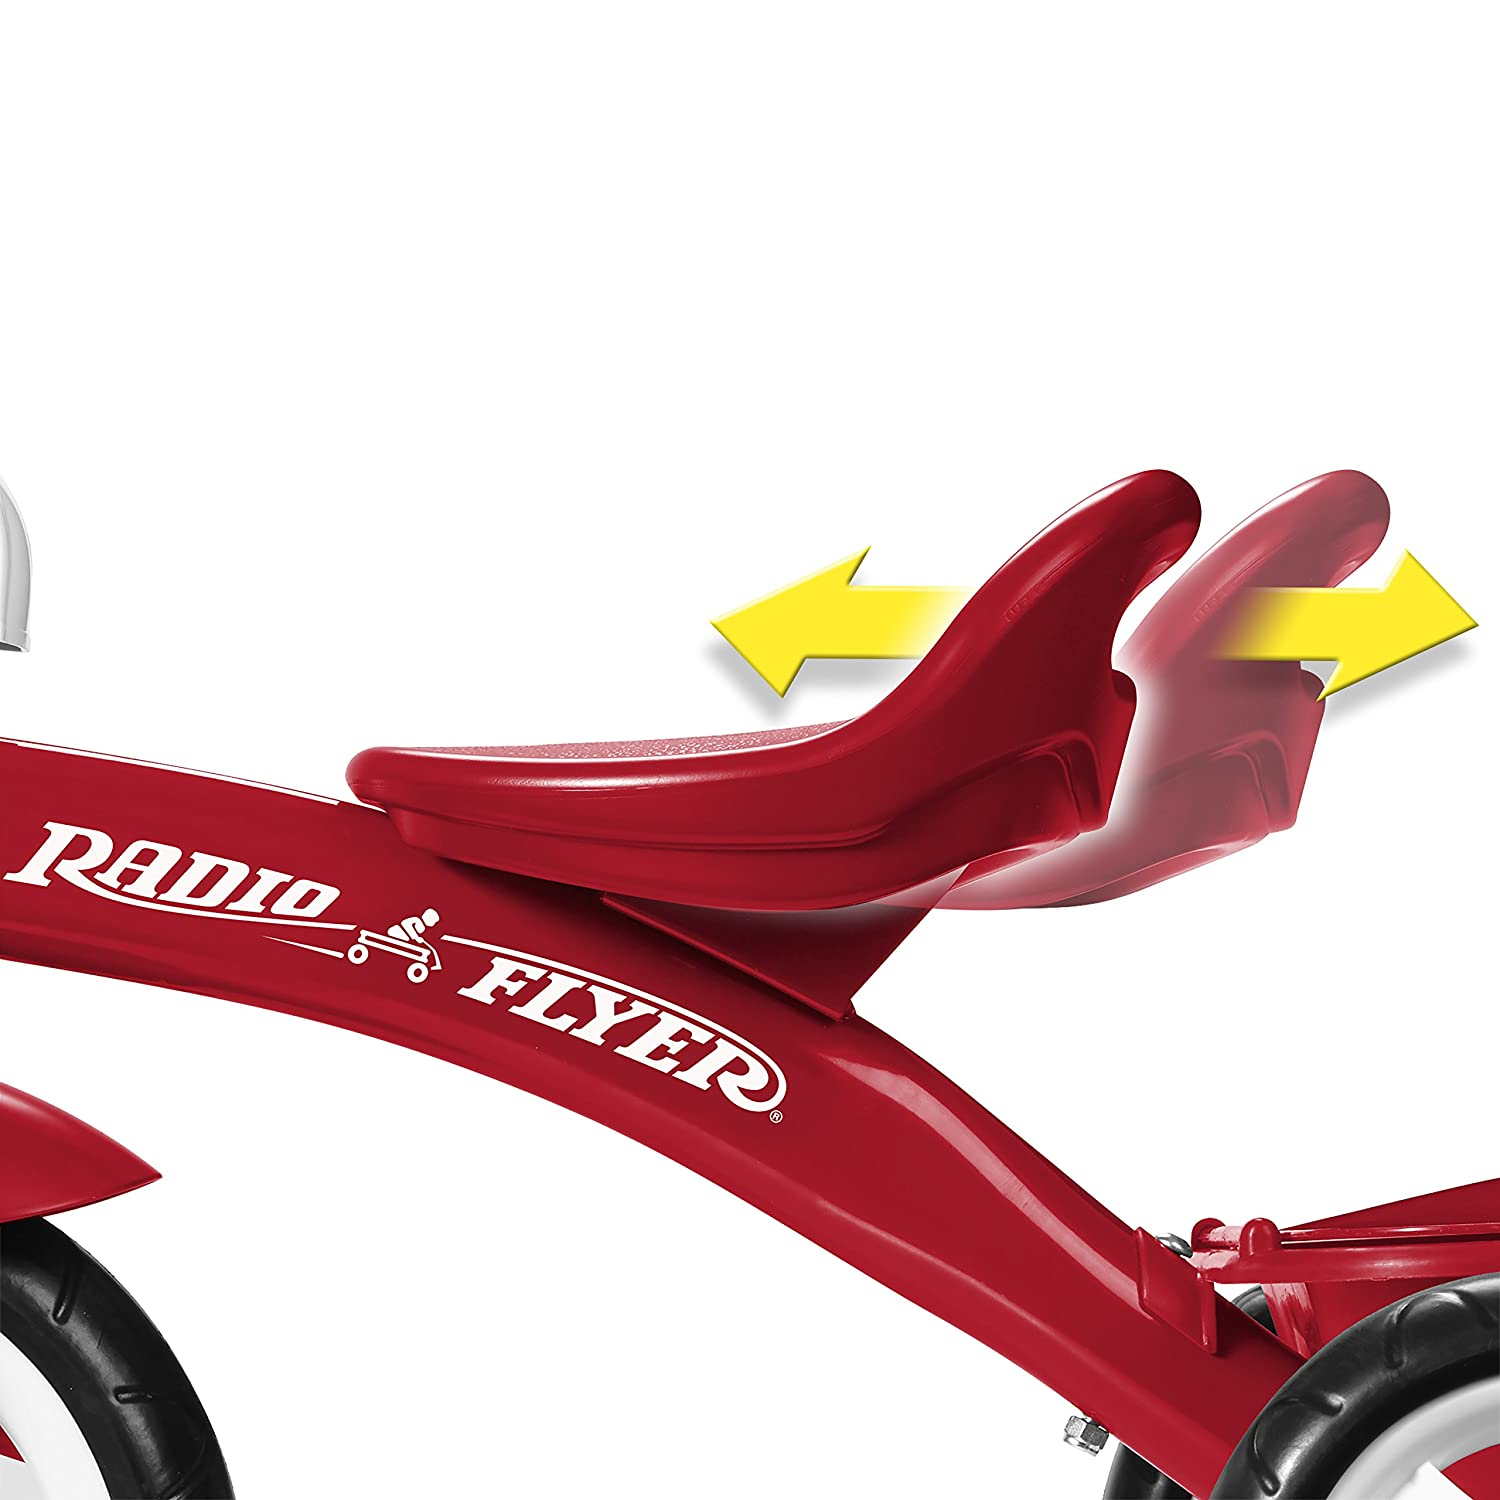 517a5ed6c2c Radio Flyer, Triciclo, Rojo: Radio Flyer - Import: Amazon.com.mx: Juegos y  juguetes